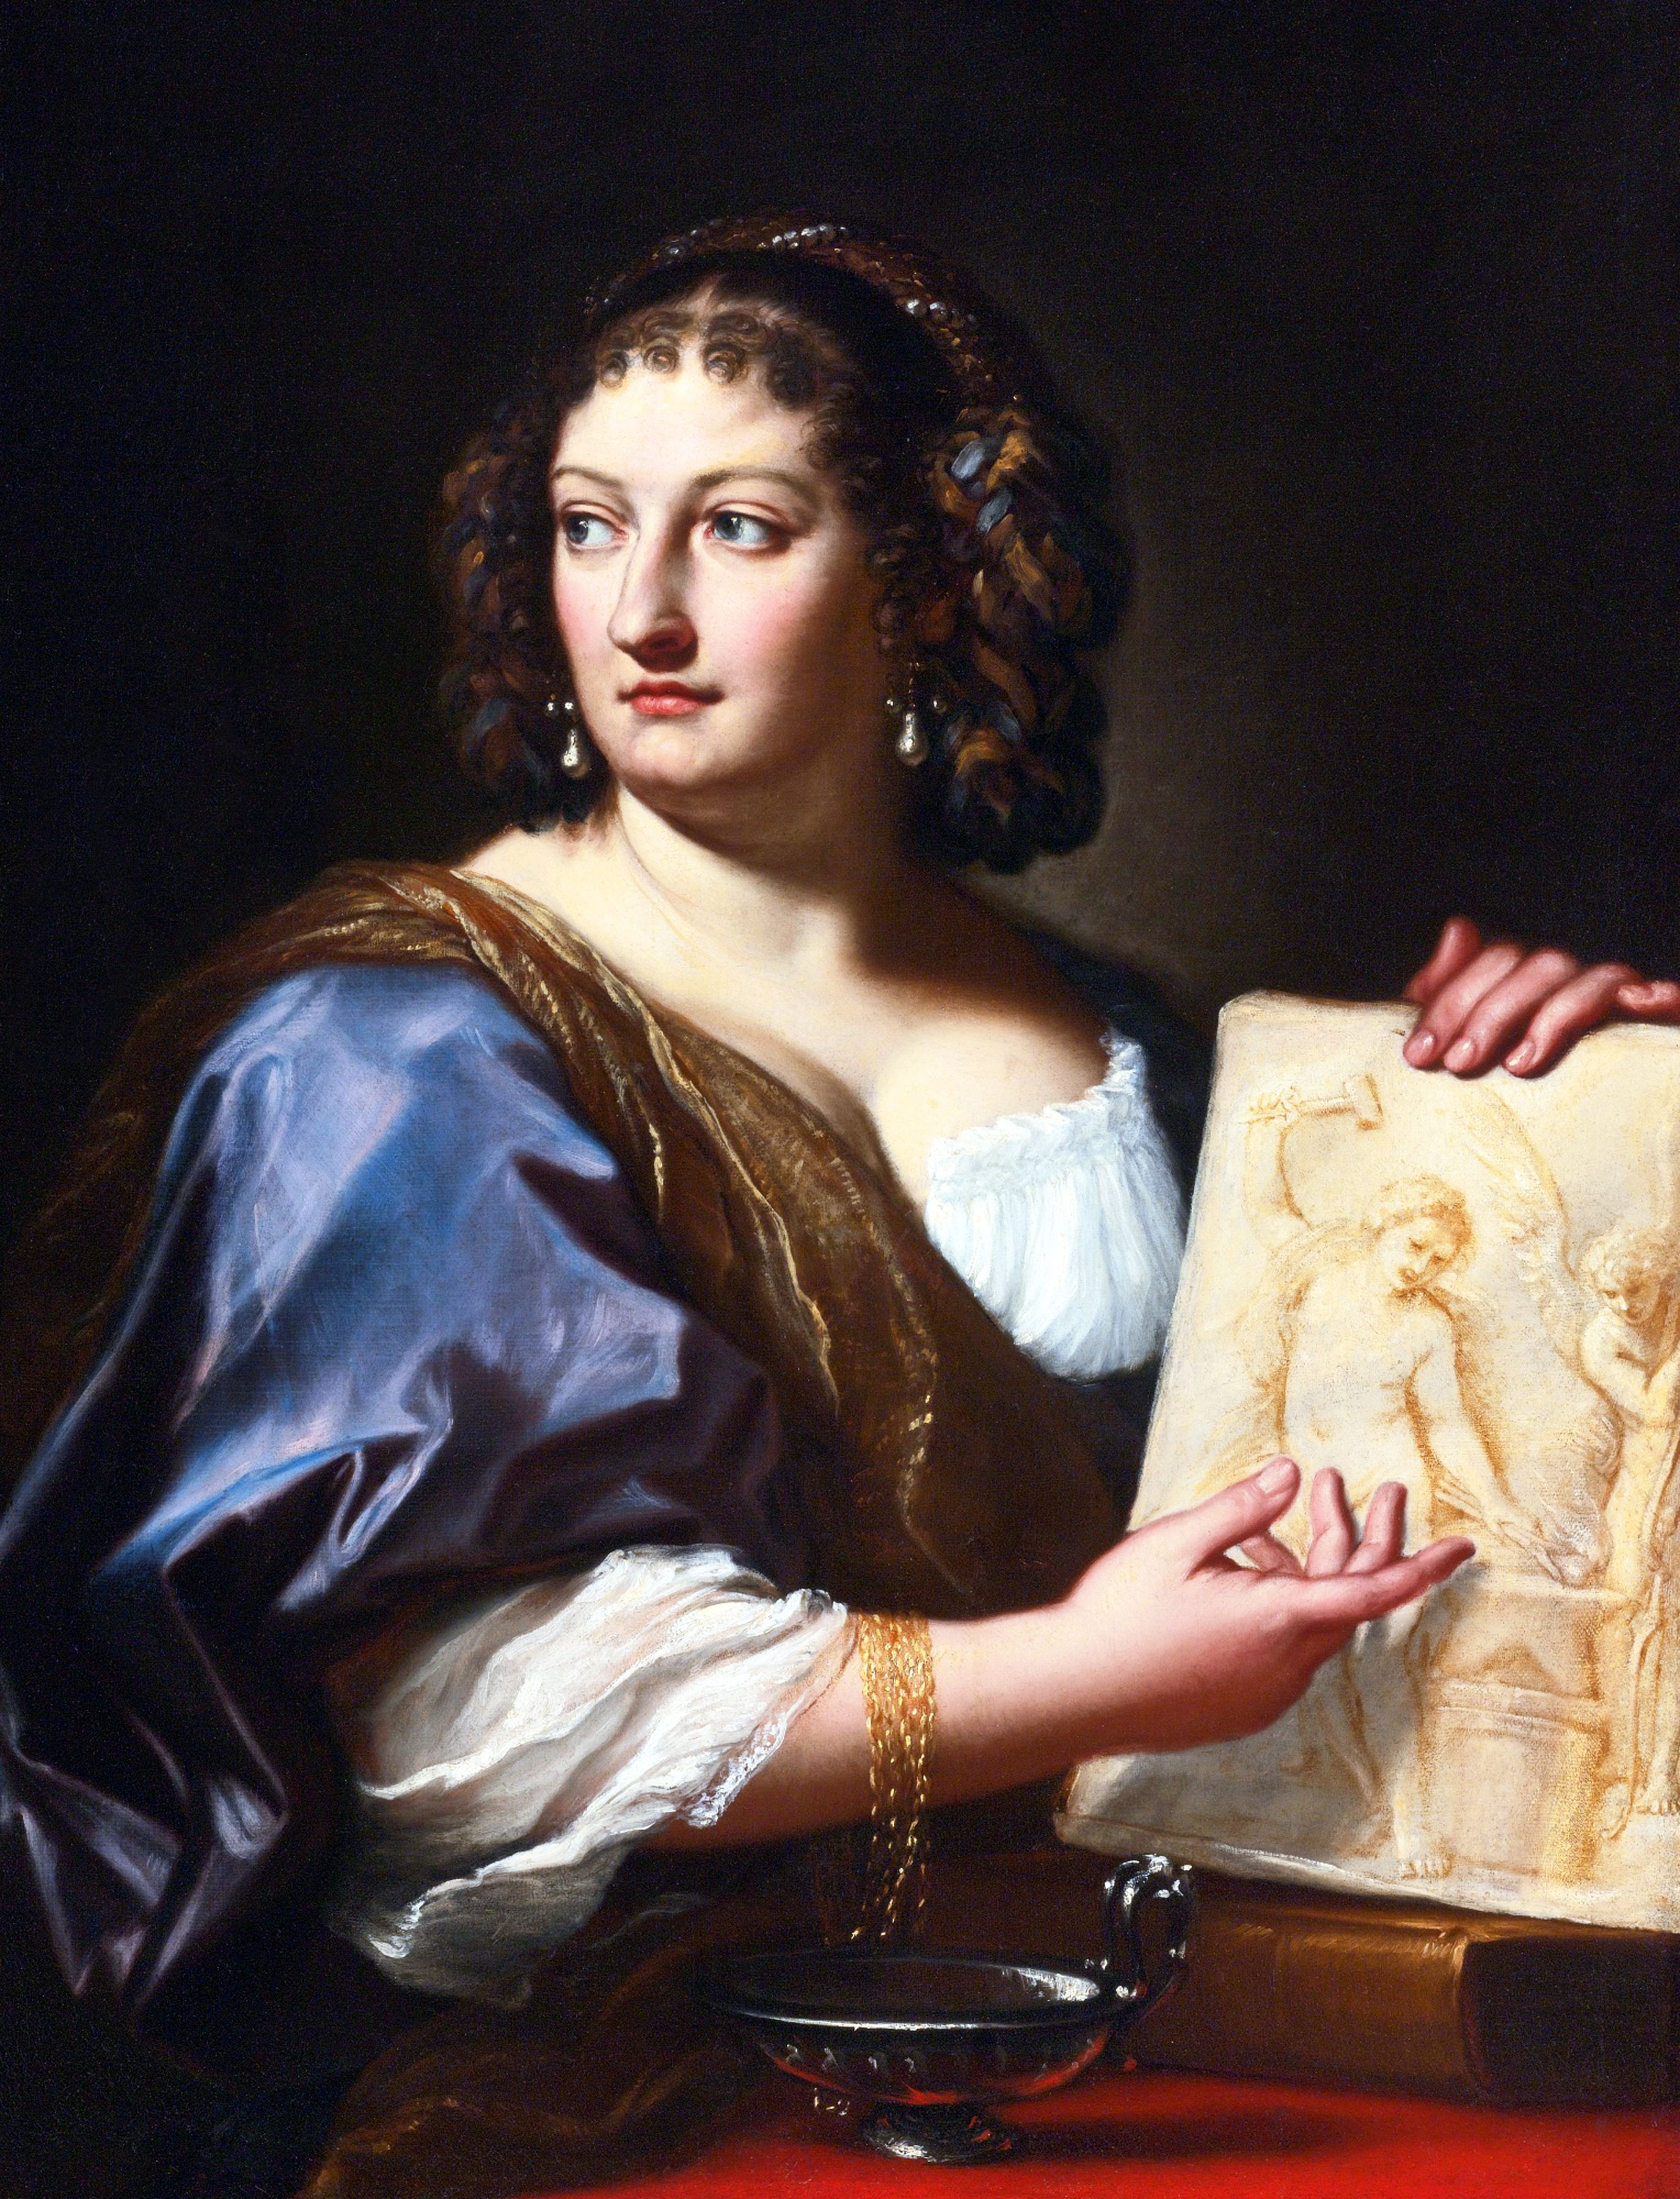 CarloMaratti(1625-1713) Portrait of FrancescaGommiMaratti(1660-1711), Wife of the PainterwhoHolds a Drawing Depicting Venus Forging the Arms of Cupid